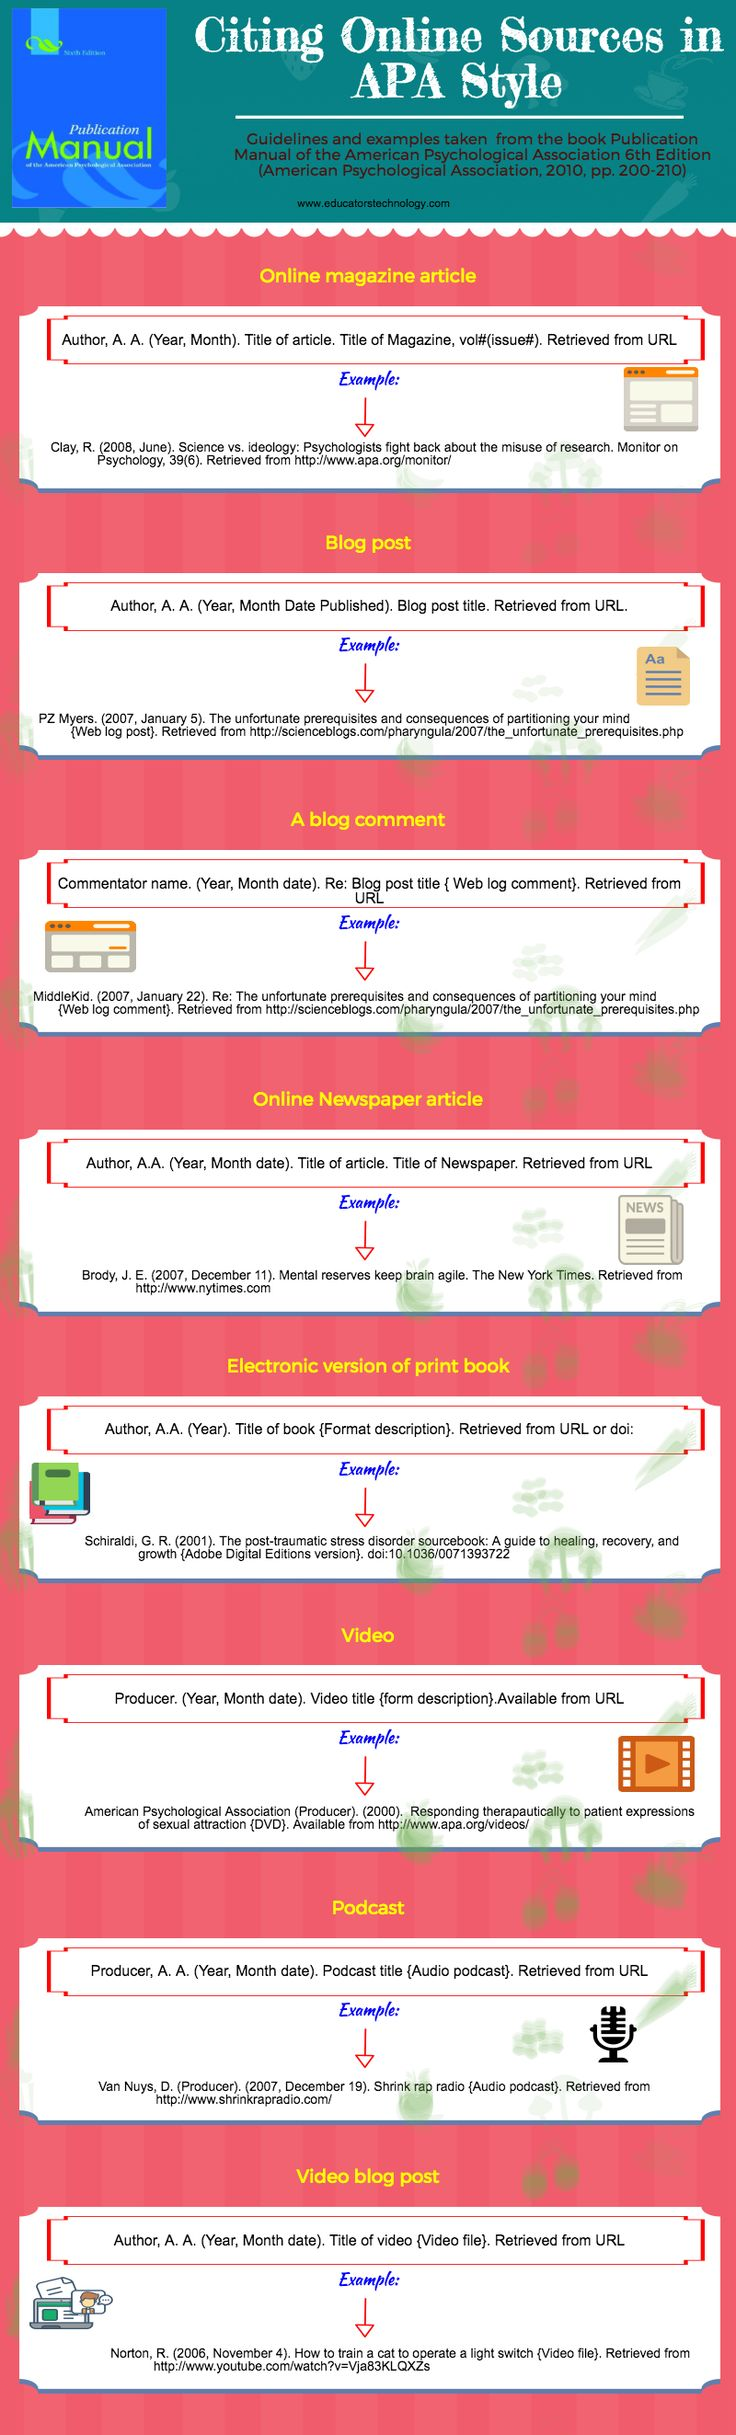 best ideas about apa style paper apa style apa an interesting visual on how to cite online sources in apa style educational technology and mobile learning